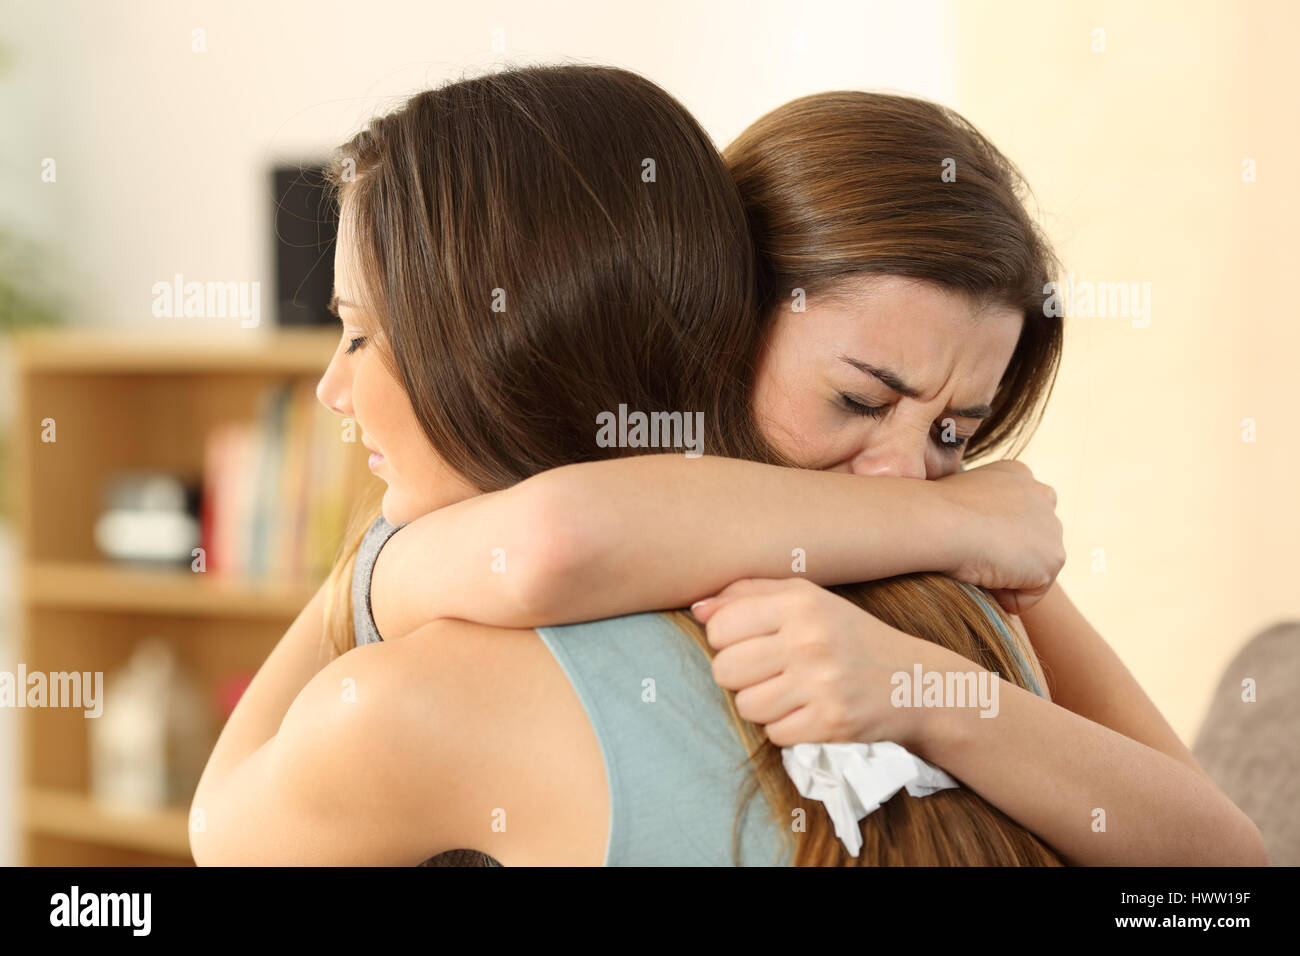 Girl embracing to comfort to her sad best friend after break up sitting on a couch in the living room at home - Stock Image